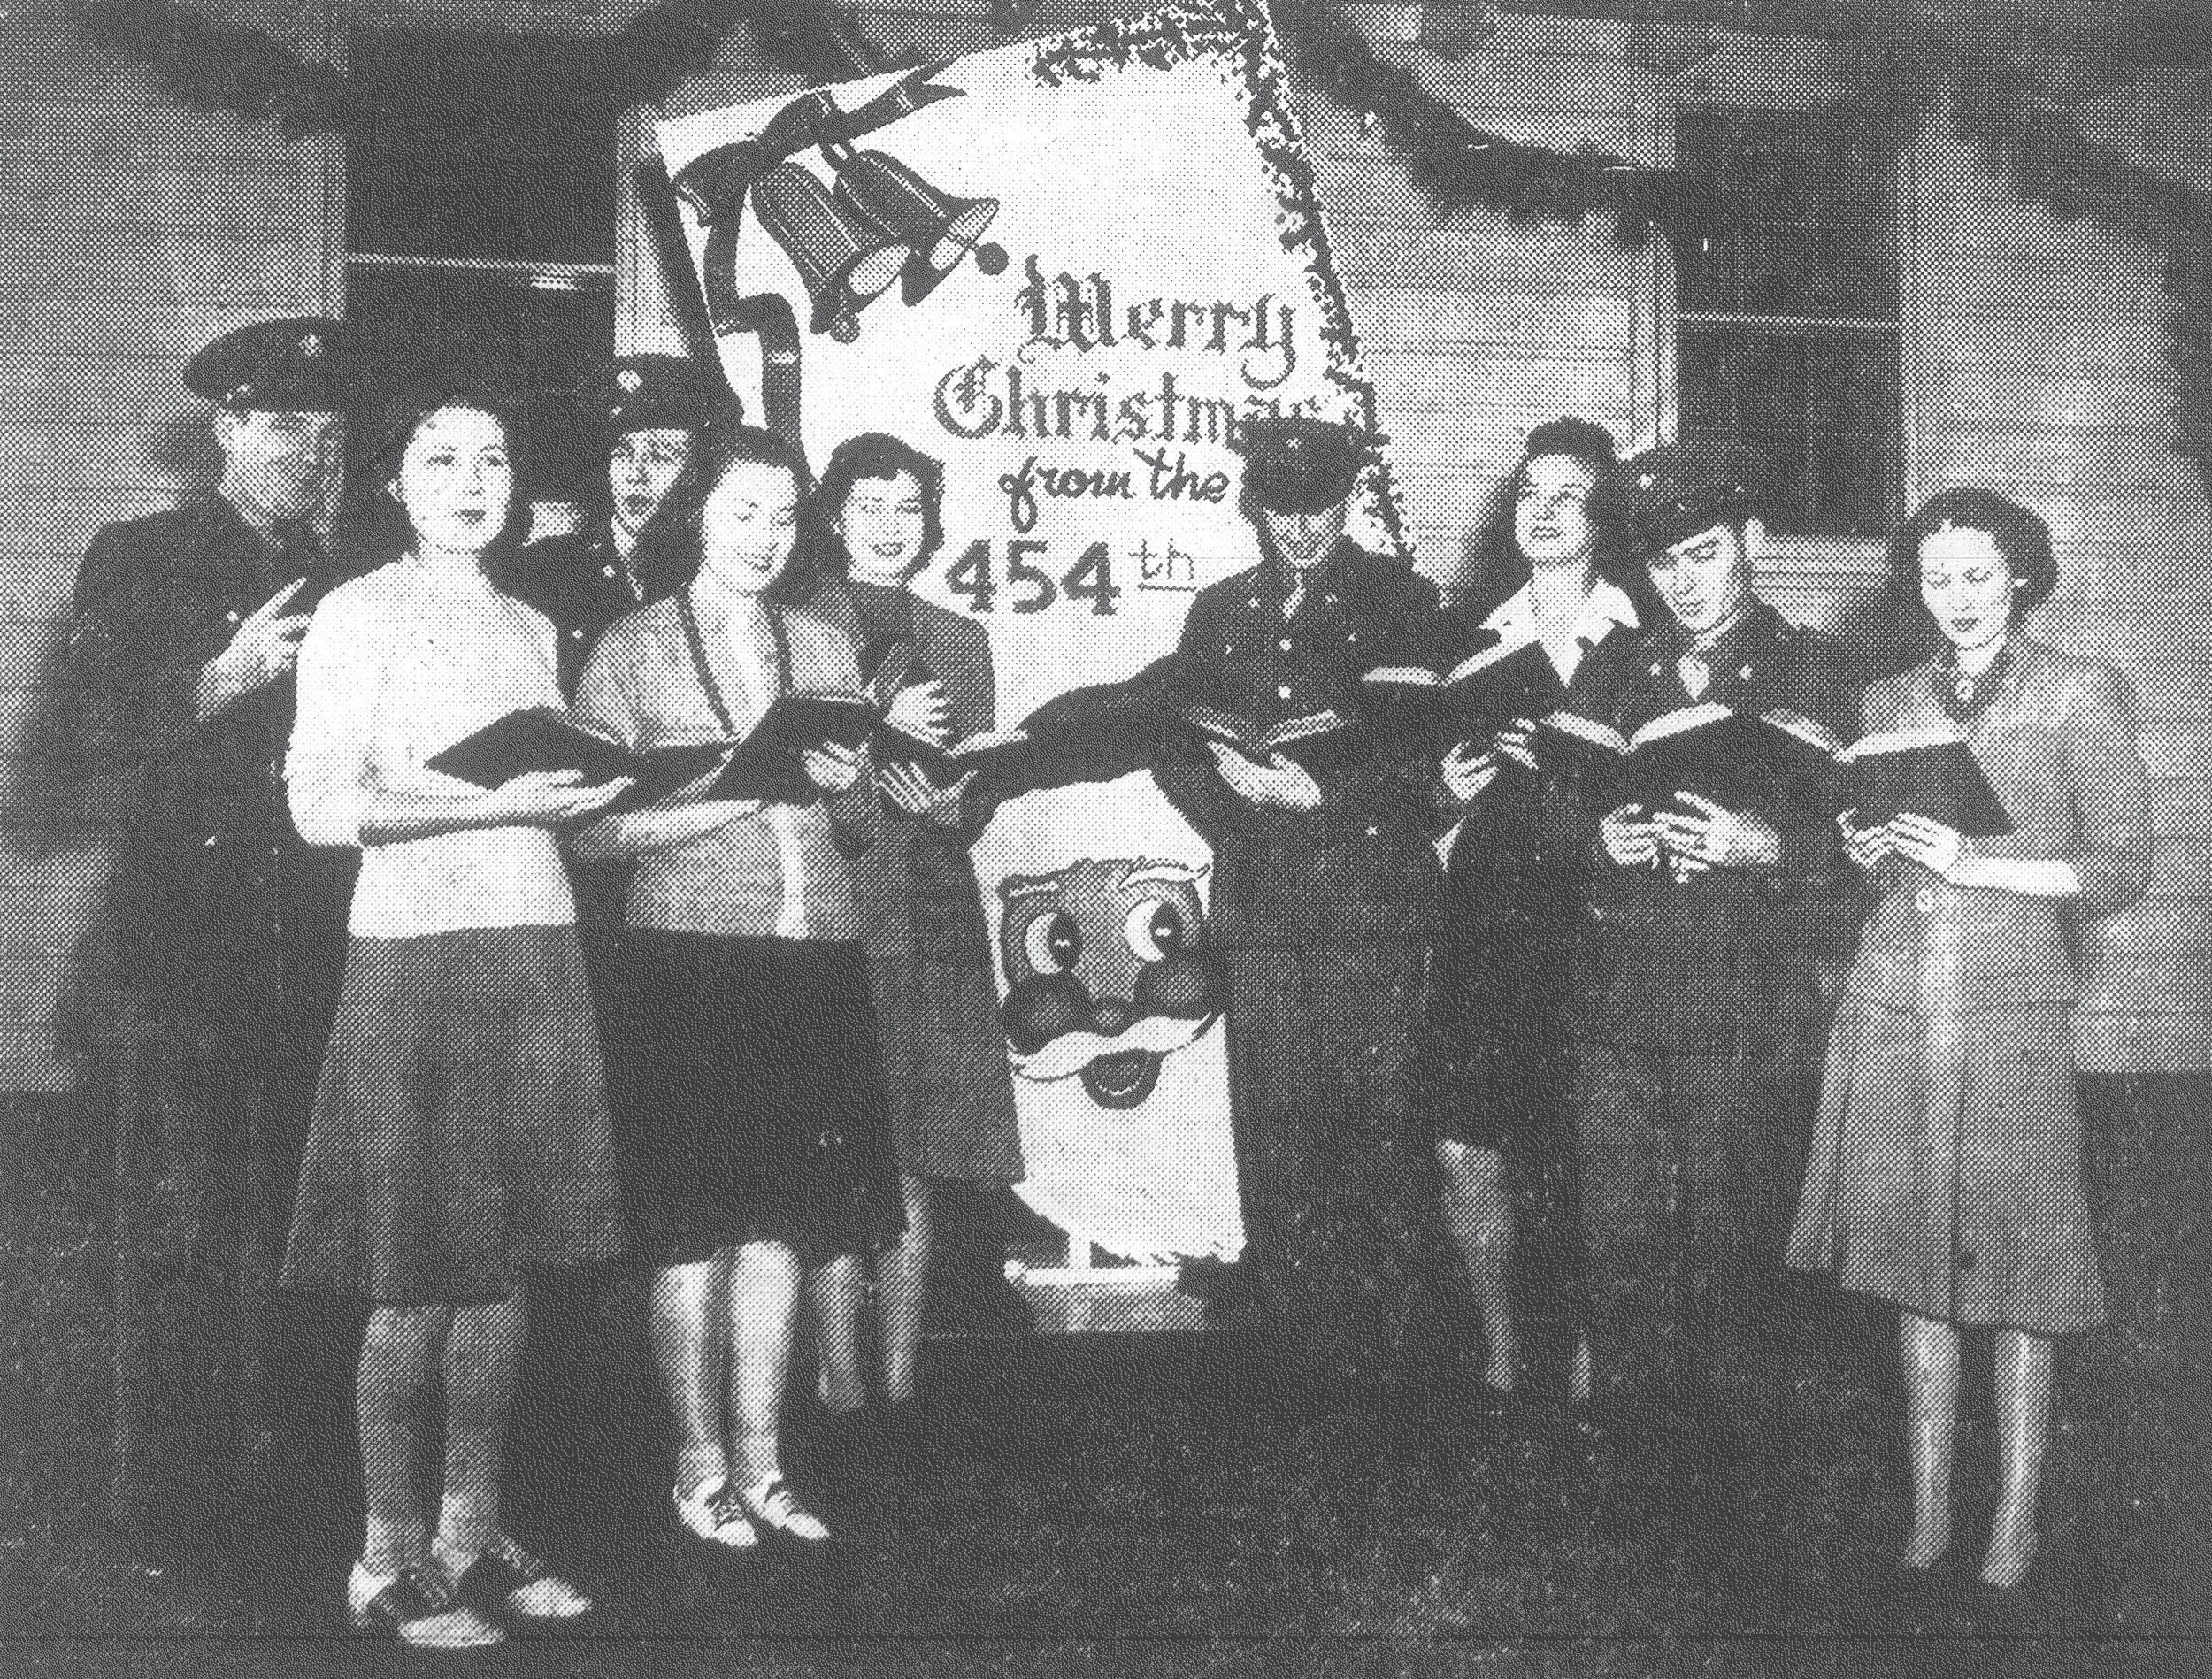 Soldiers and civilians join voices in welcoming the yuletide at the Army's Basic Flying School at Shaw Field. Gathered in front of one of the squadron dayrooms to sing out their greetings are Pansy Howell, Mary Elizabeth Rigby, Sherry Hook, Margarita Baldwin and Claire Gregg, all post headquarters employees; and Staff Sgt. Jack Lewis, Cpl. Vincent Sherwin, Cpl. Bill Jones and Pvt. Buster G. Thornton, members of the 454th Flying Training Squadron.